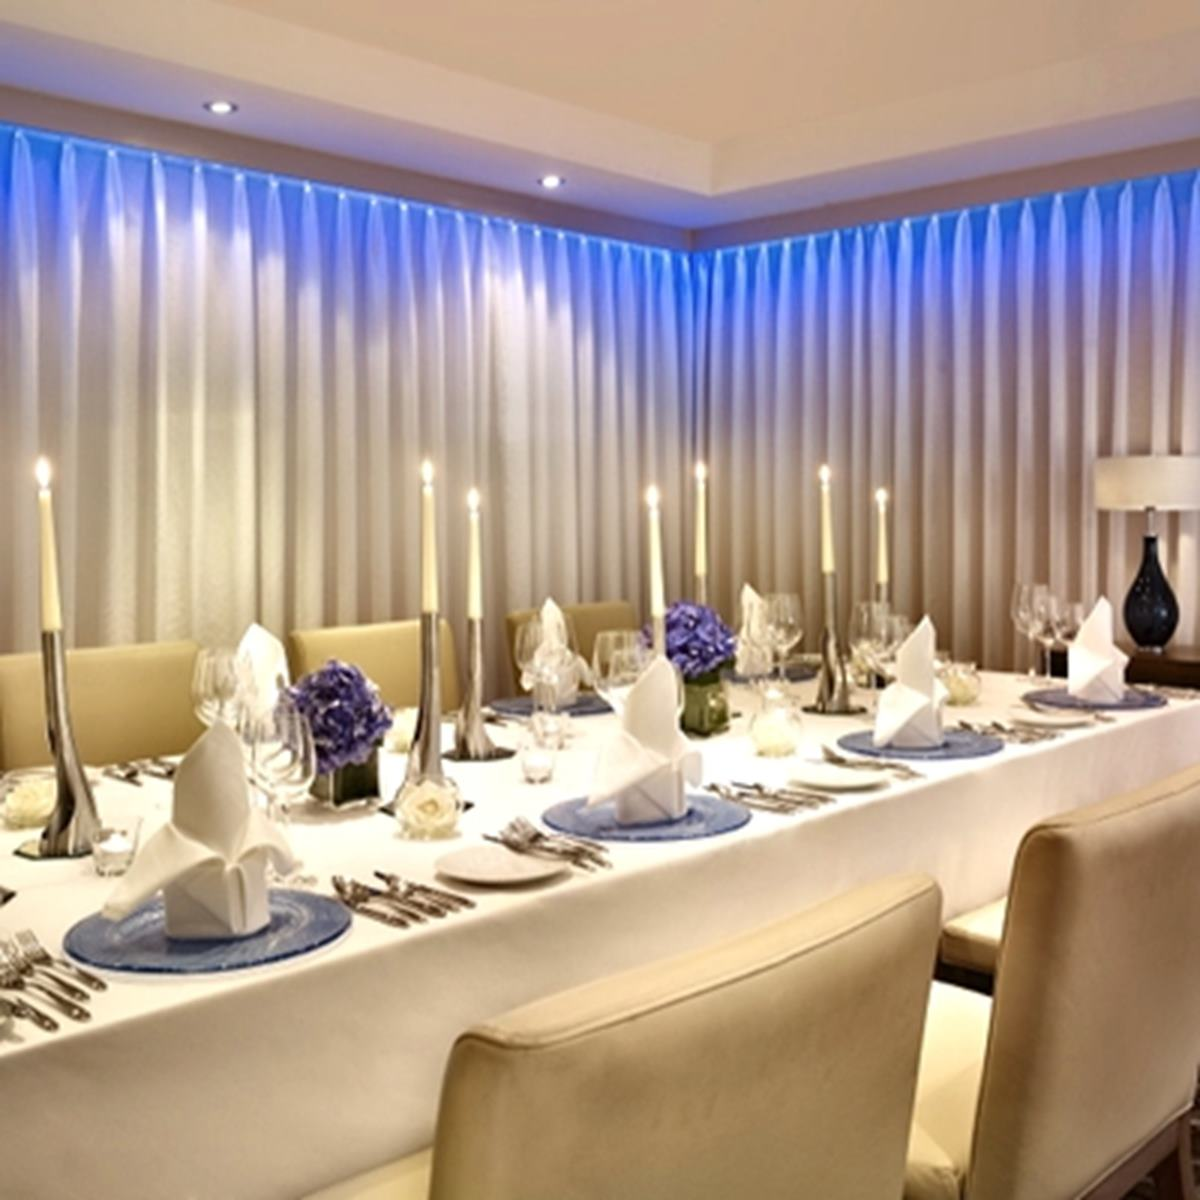 Object moved for Best private dining rooms chelsea